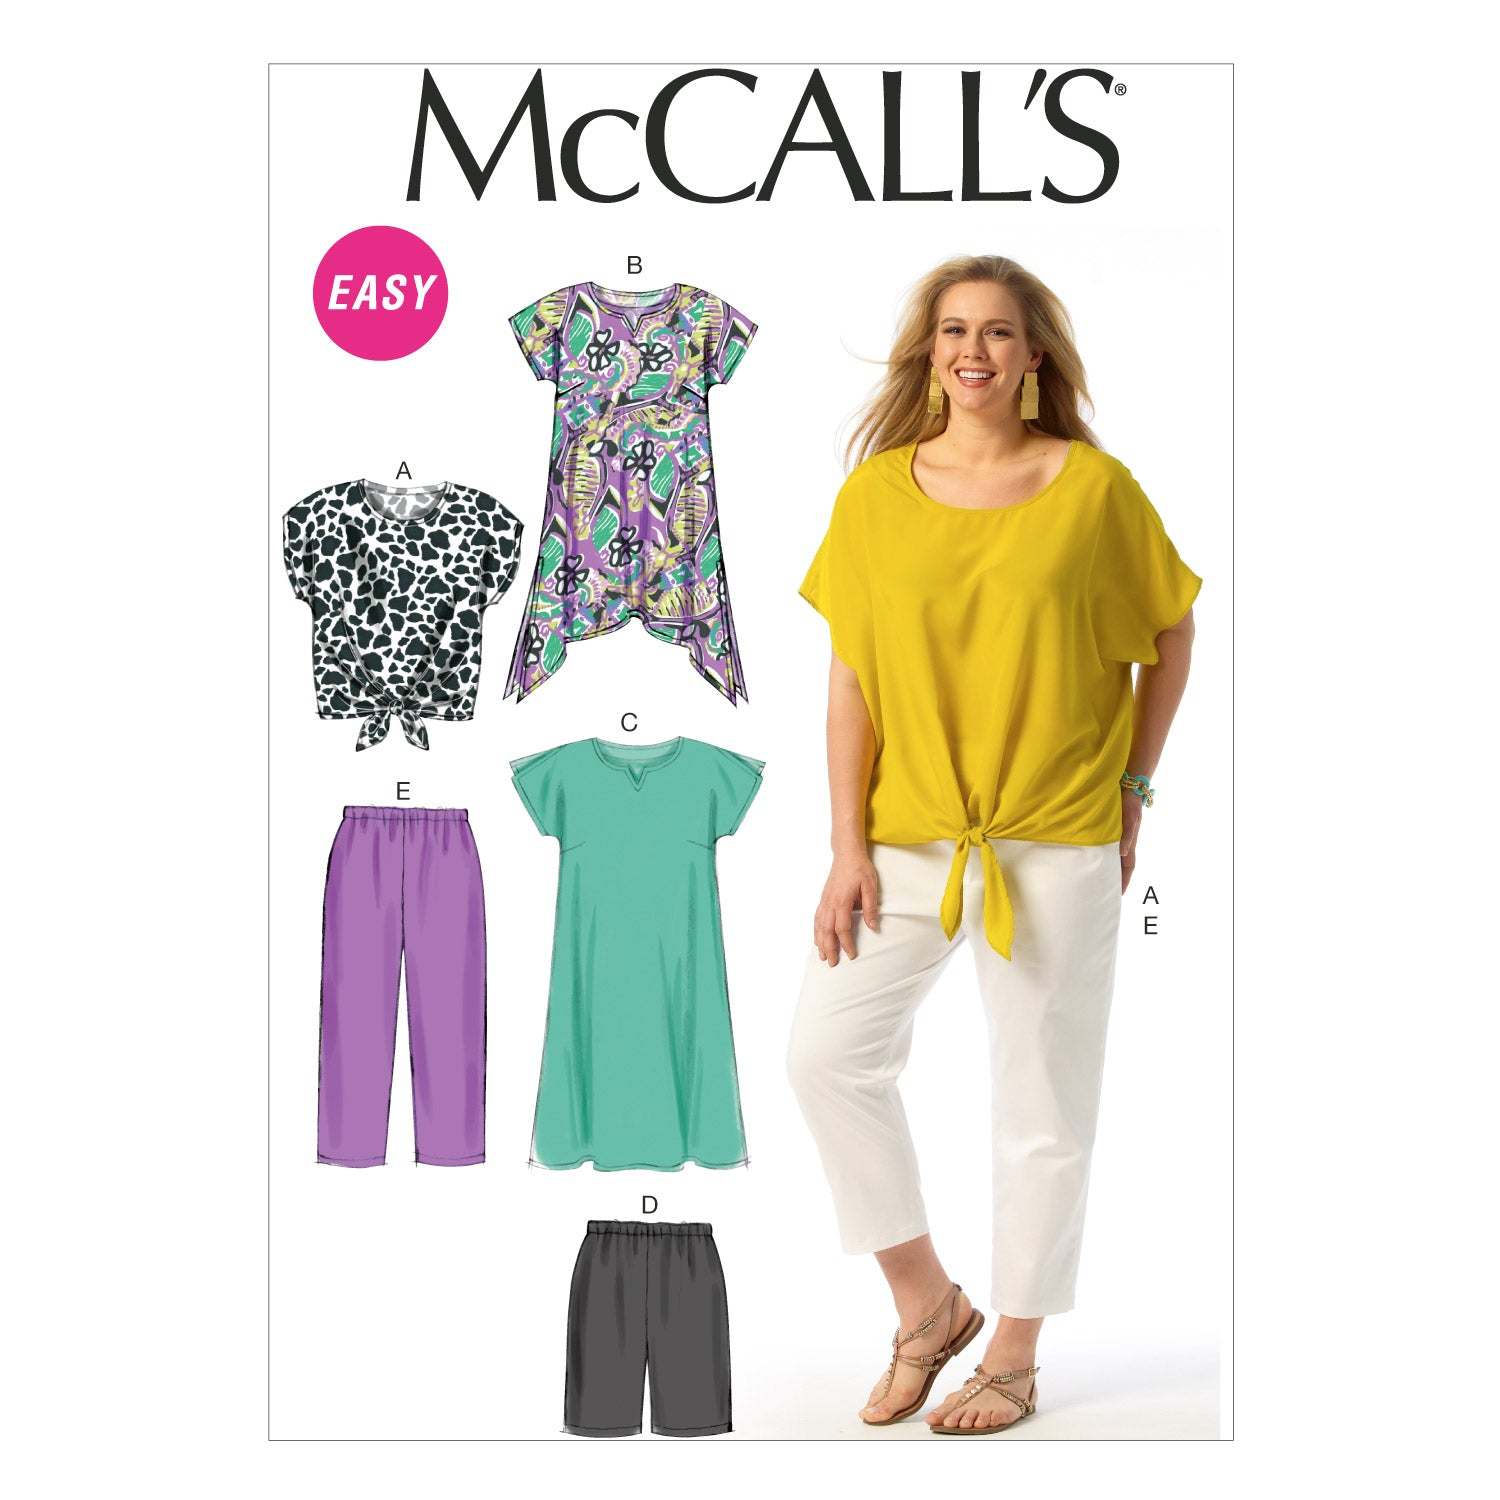 McCall's M6971RR0 Women's Top, Tunic, Dress, Shorts and Pants 18W-20W-22W-24W